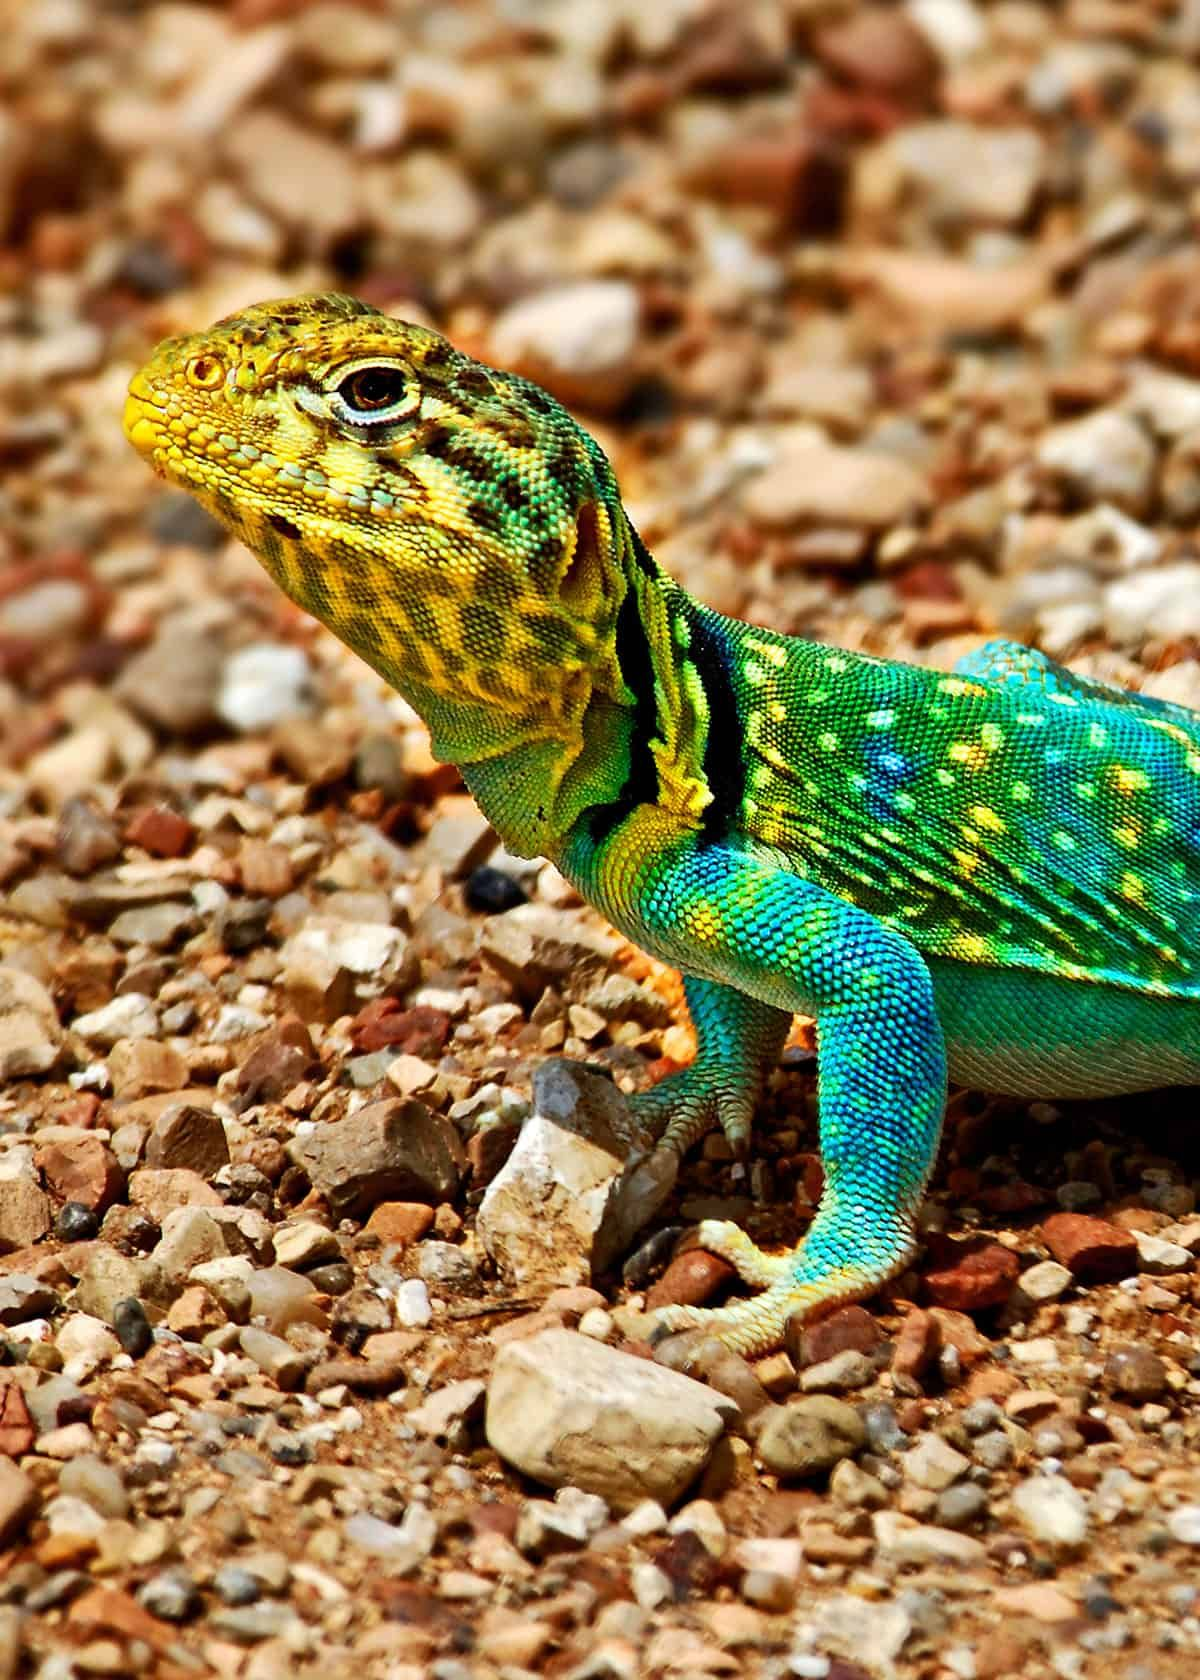 35 Most Colorful Animals In The World Mammals Birds